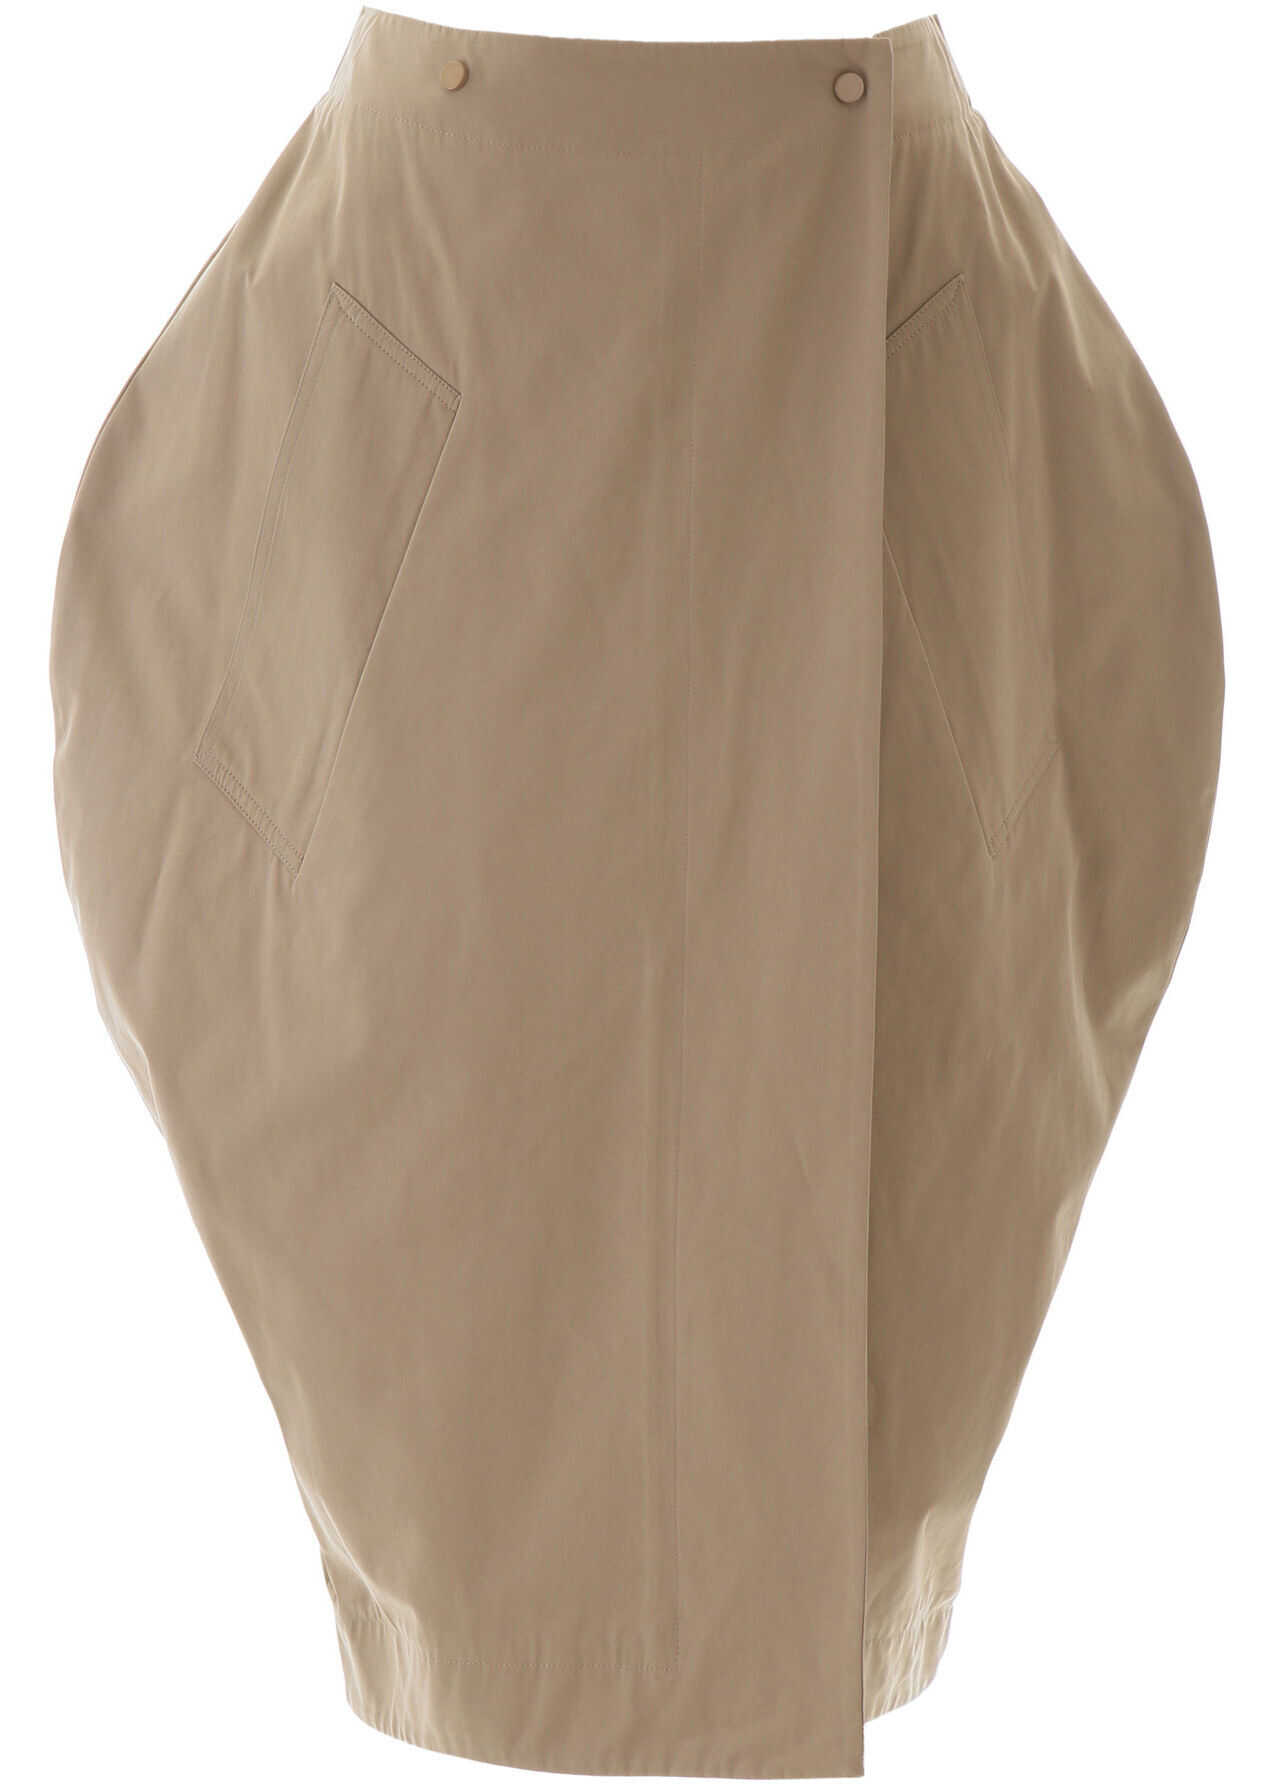 Bottega Veneta Balloon Skirt SAND